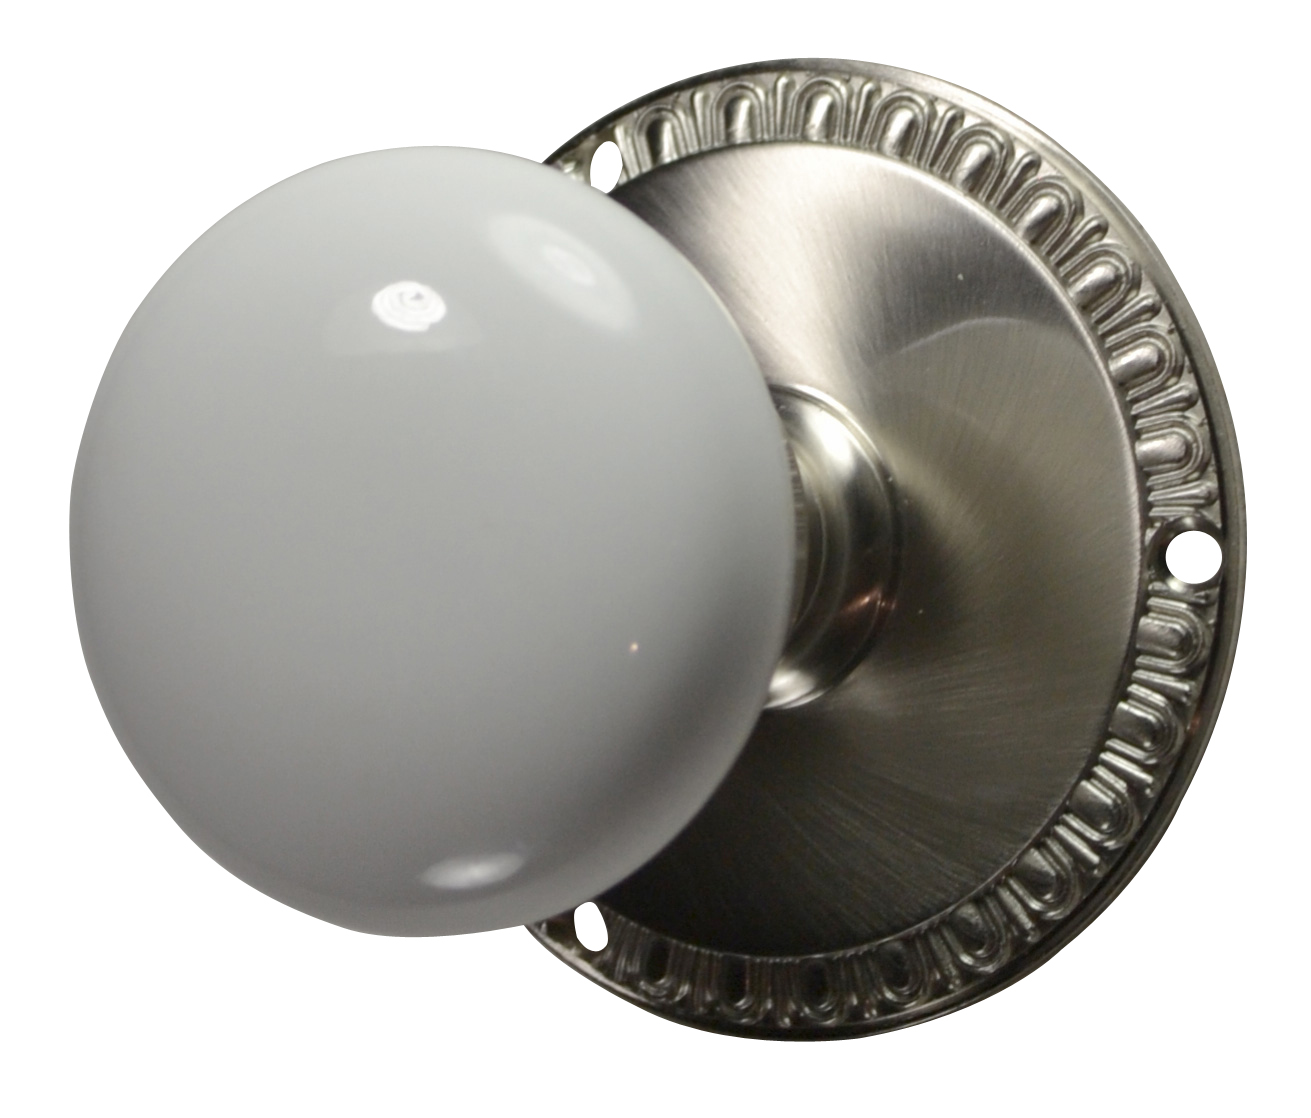 Egg & Dart White Porcelain Door Knob (Brushed Nickel Finish)